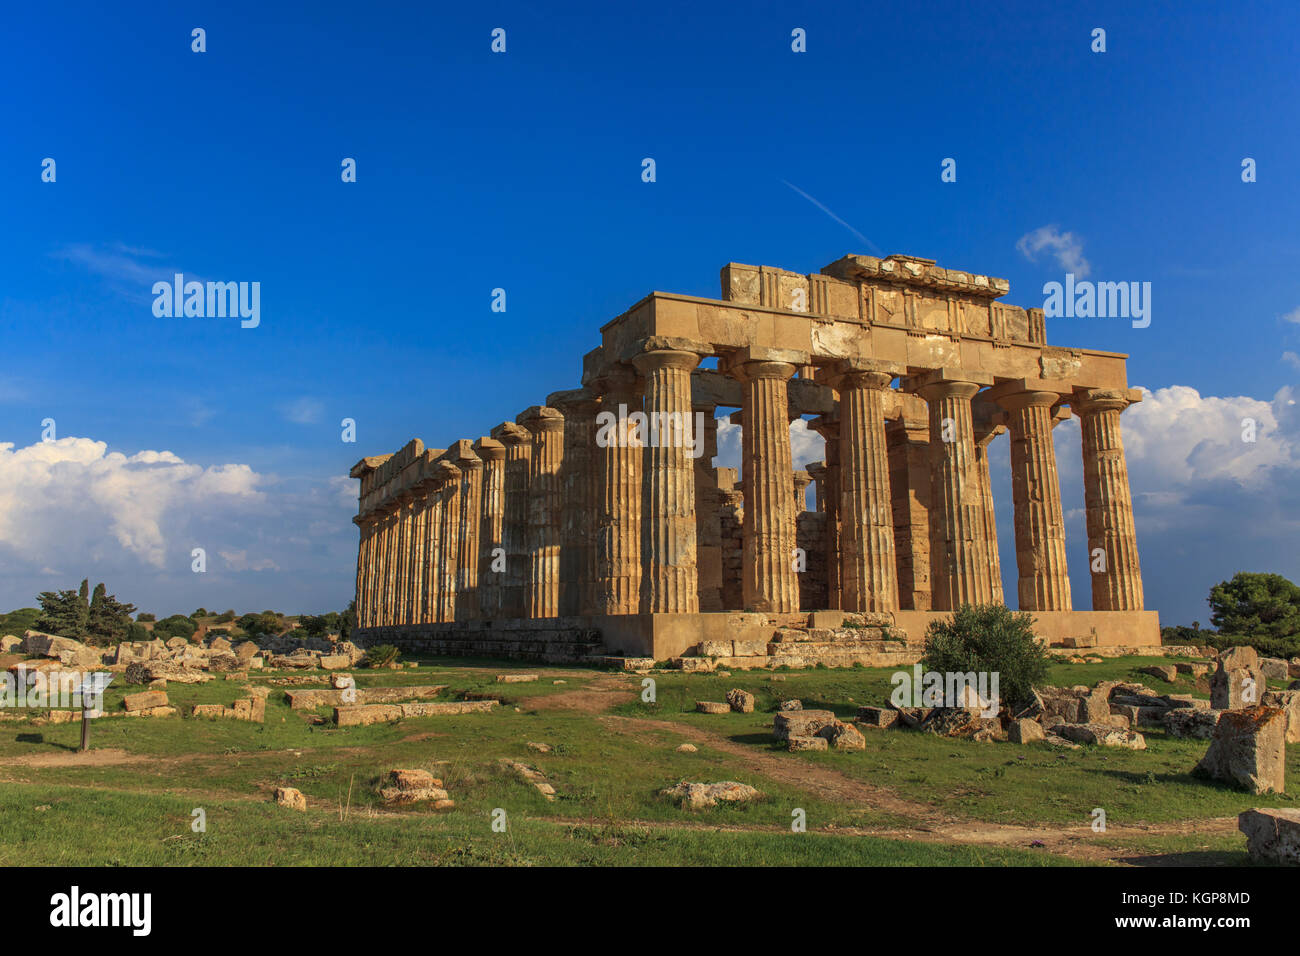 The temples of Selinunte - Stock Image